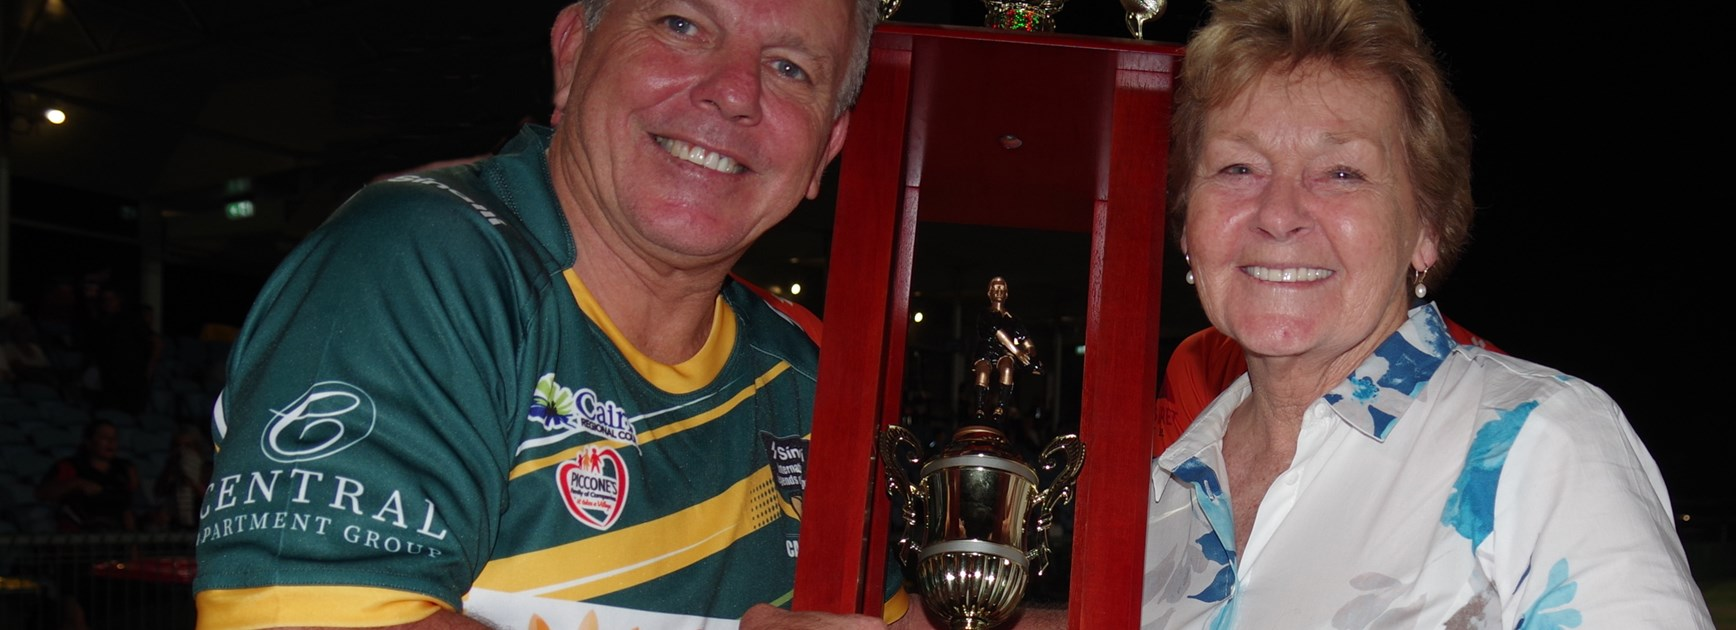 Rugby league greats thrill fans in Cairns charity match